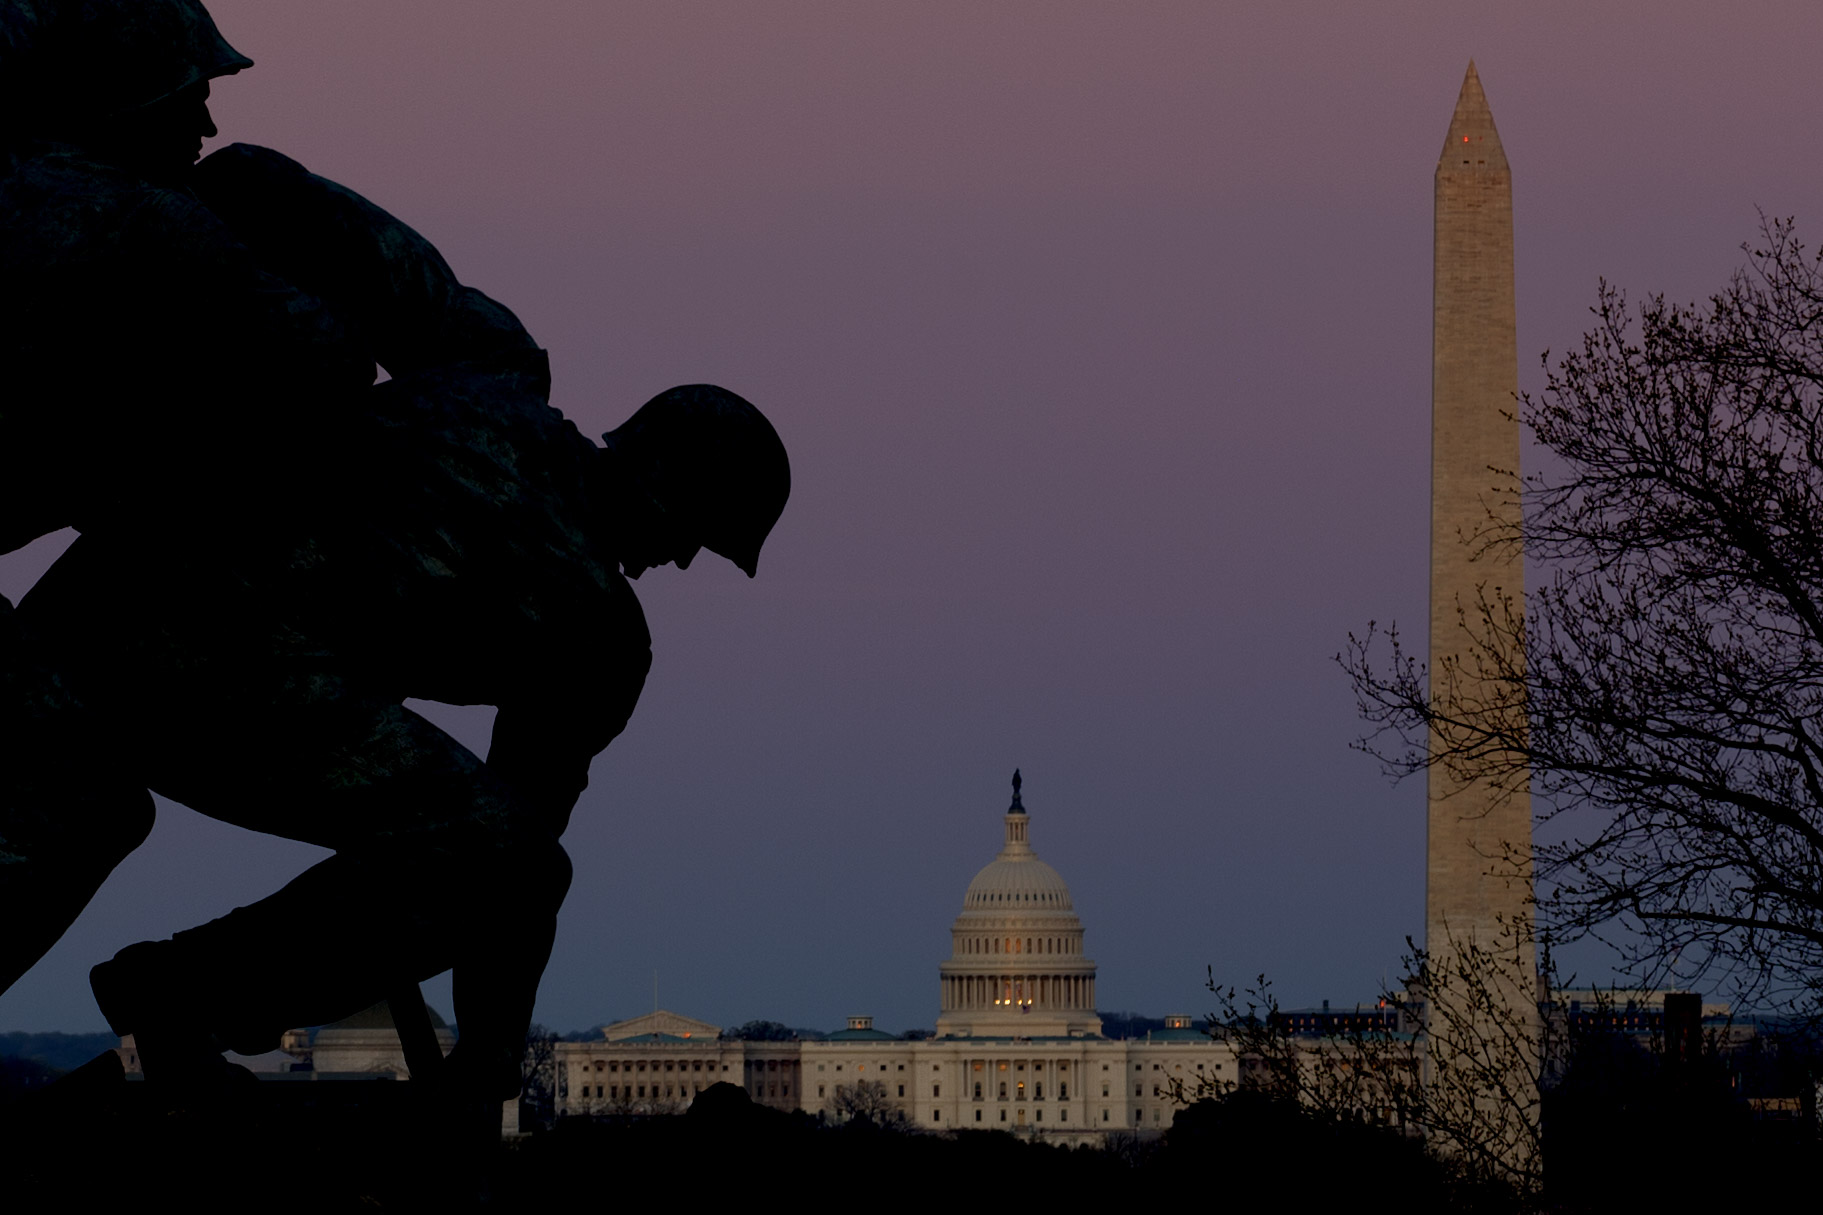 A Fun crop at twilight - Iwo Jima and US Capitol